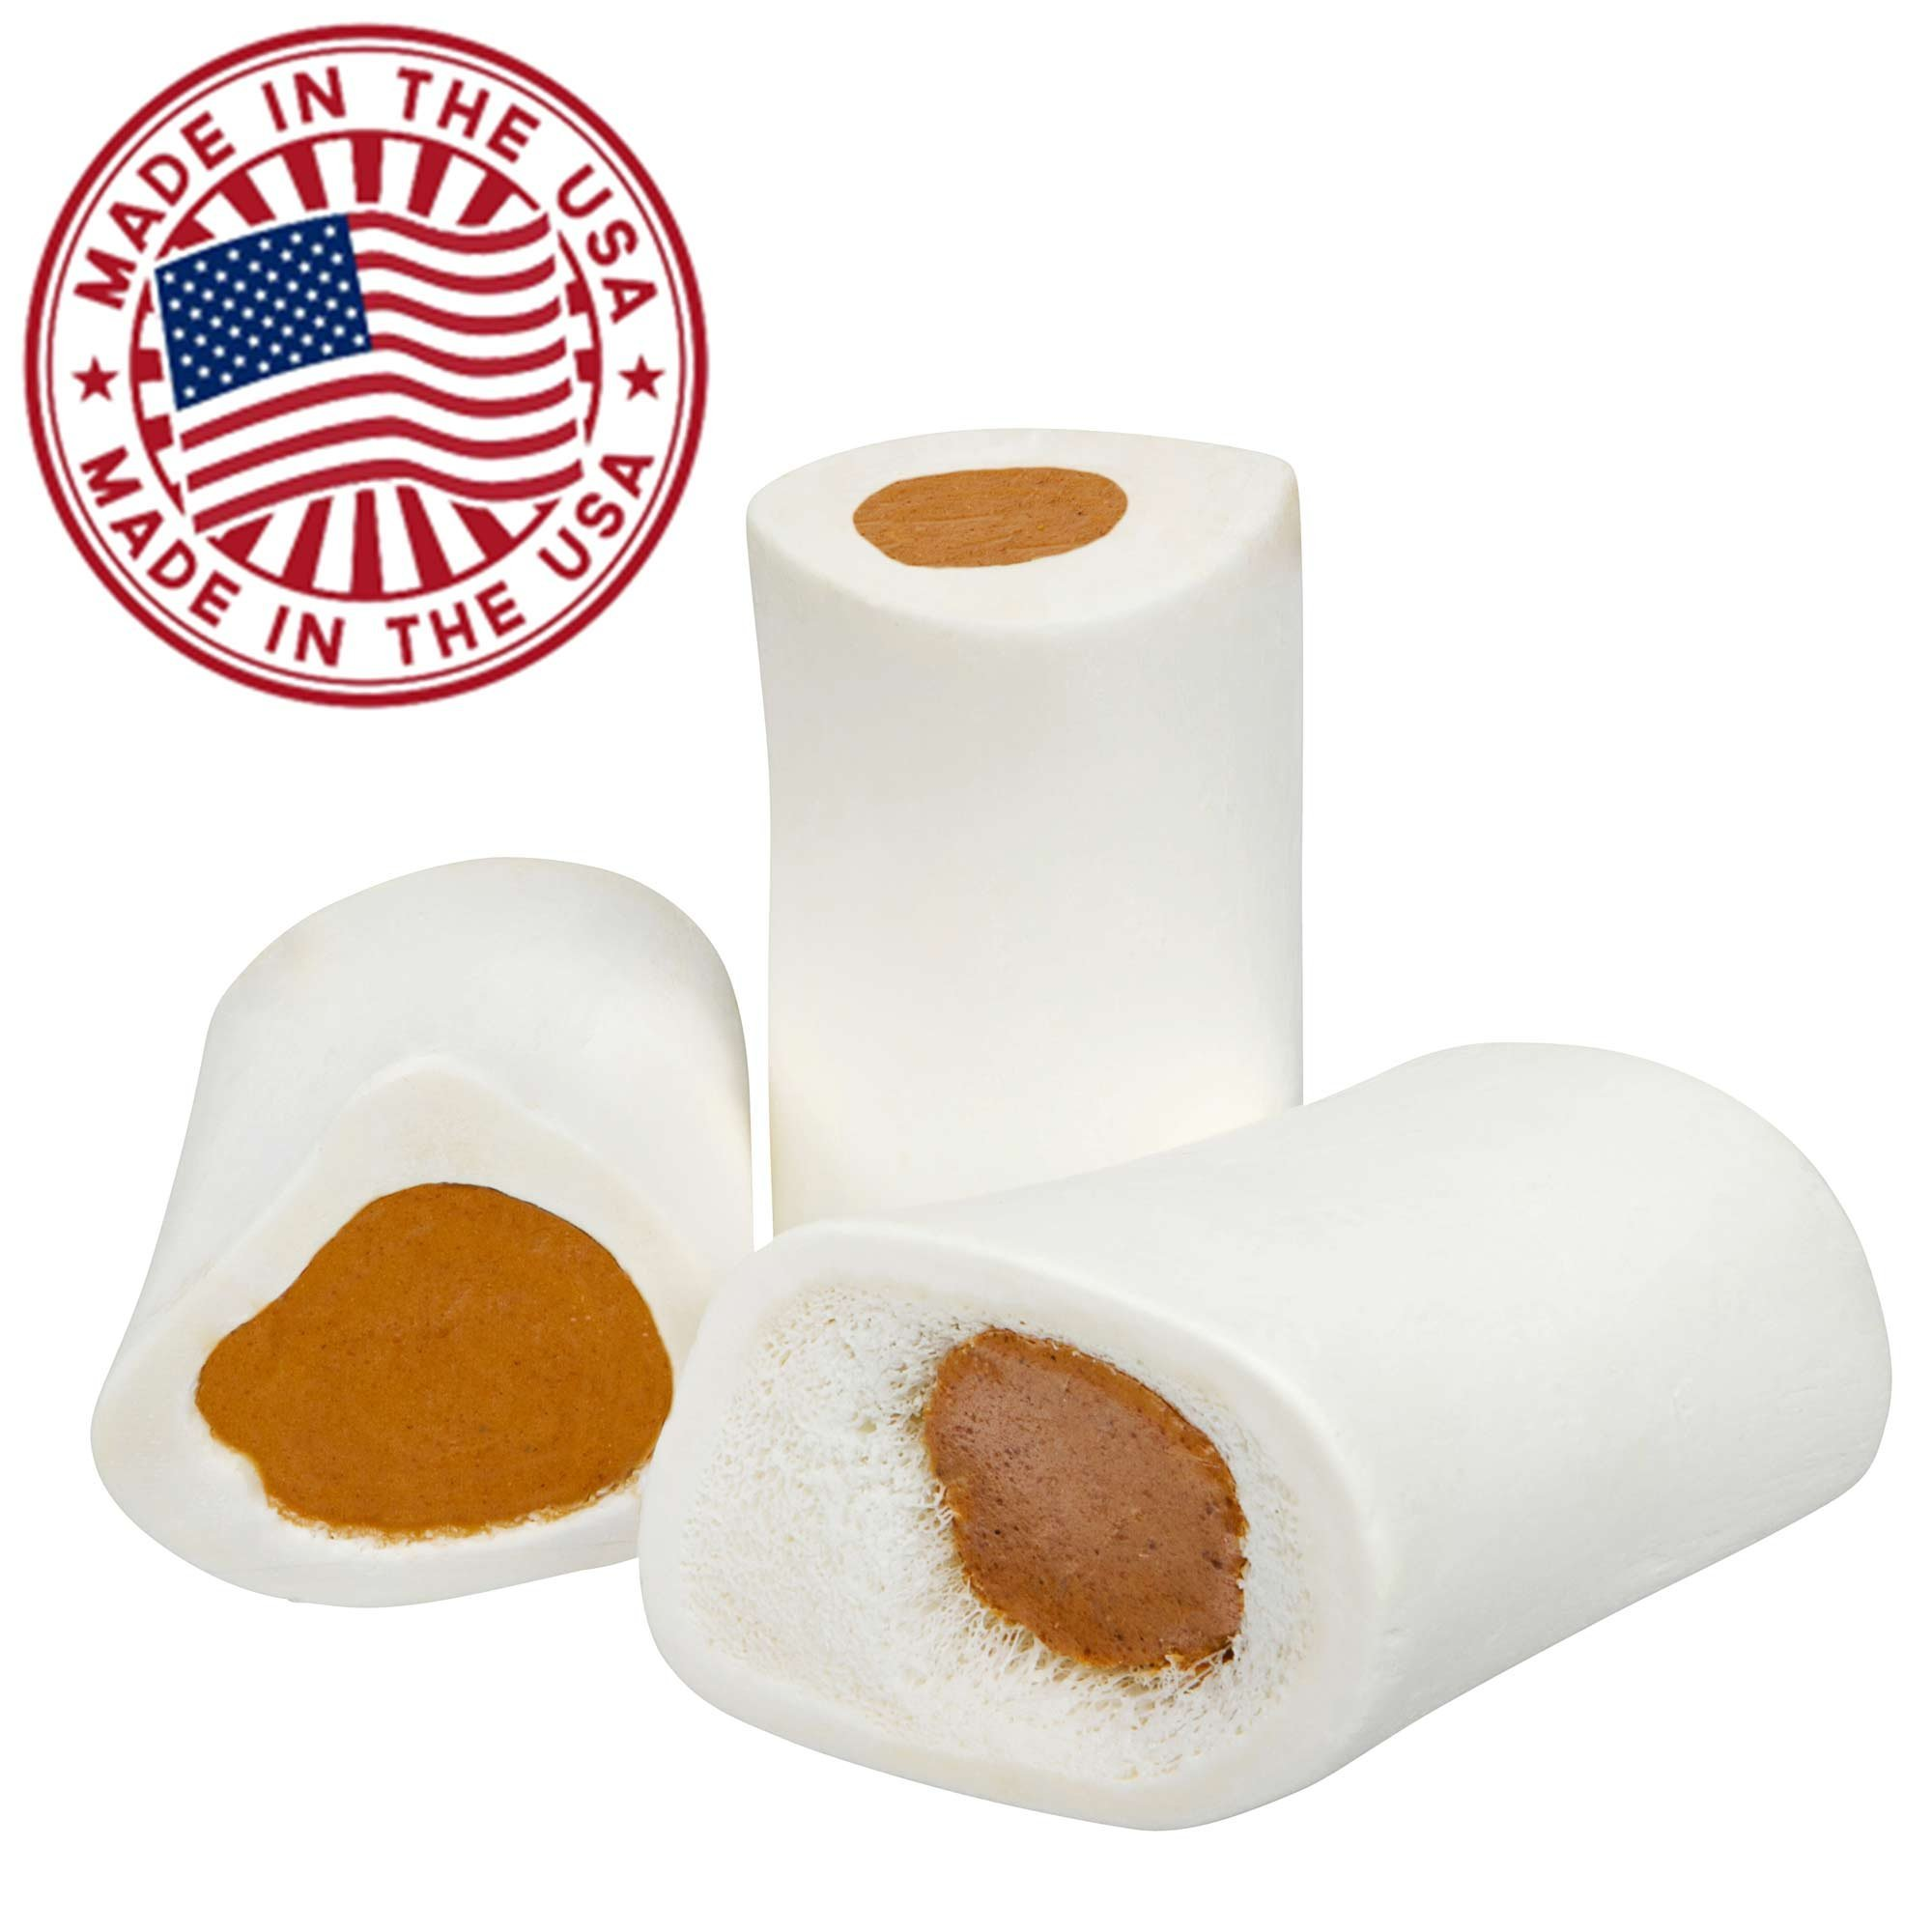 Filled Dog Bones (Flavors: Peanut Butter, Cheese, Bacon, Beef, etc.) Made in USA Stuffed Bulk 3 to 6'' Femur Dog Dental Treats & Chews, American Made (Peanut Butter Filling, Small (3'') - 50 Pack)